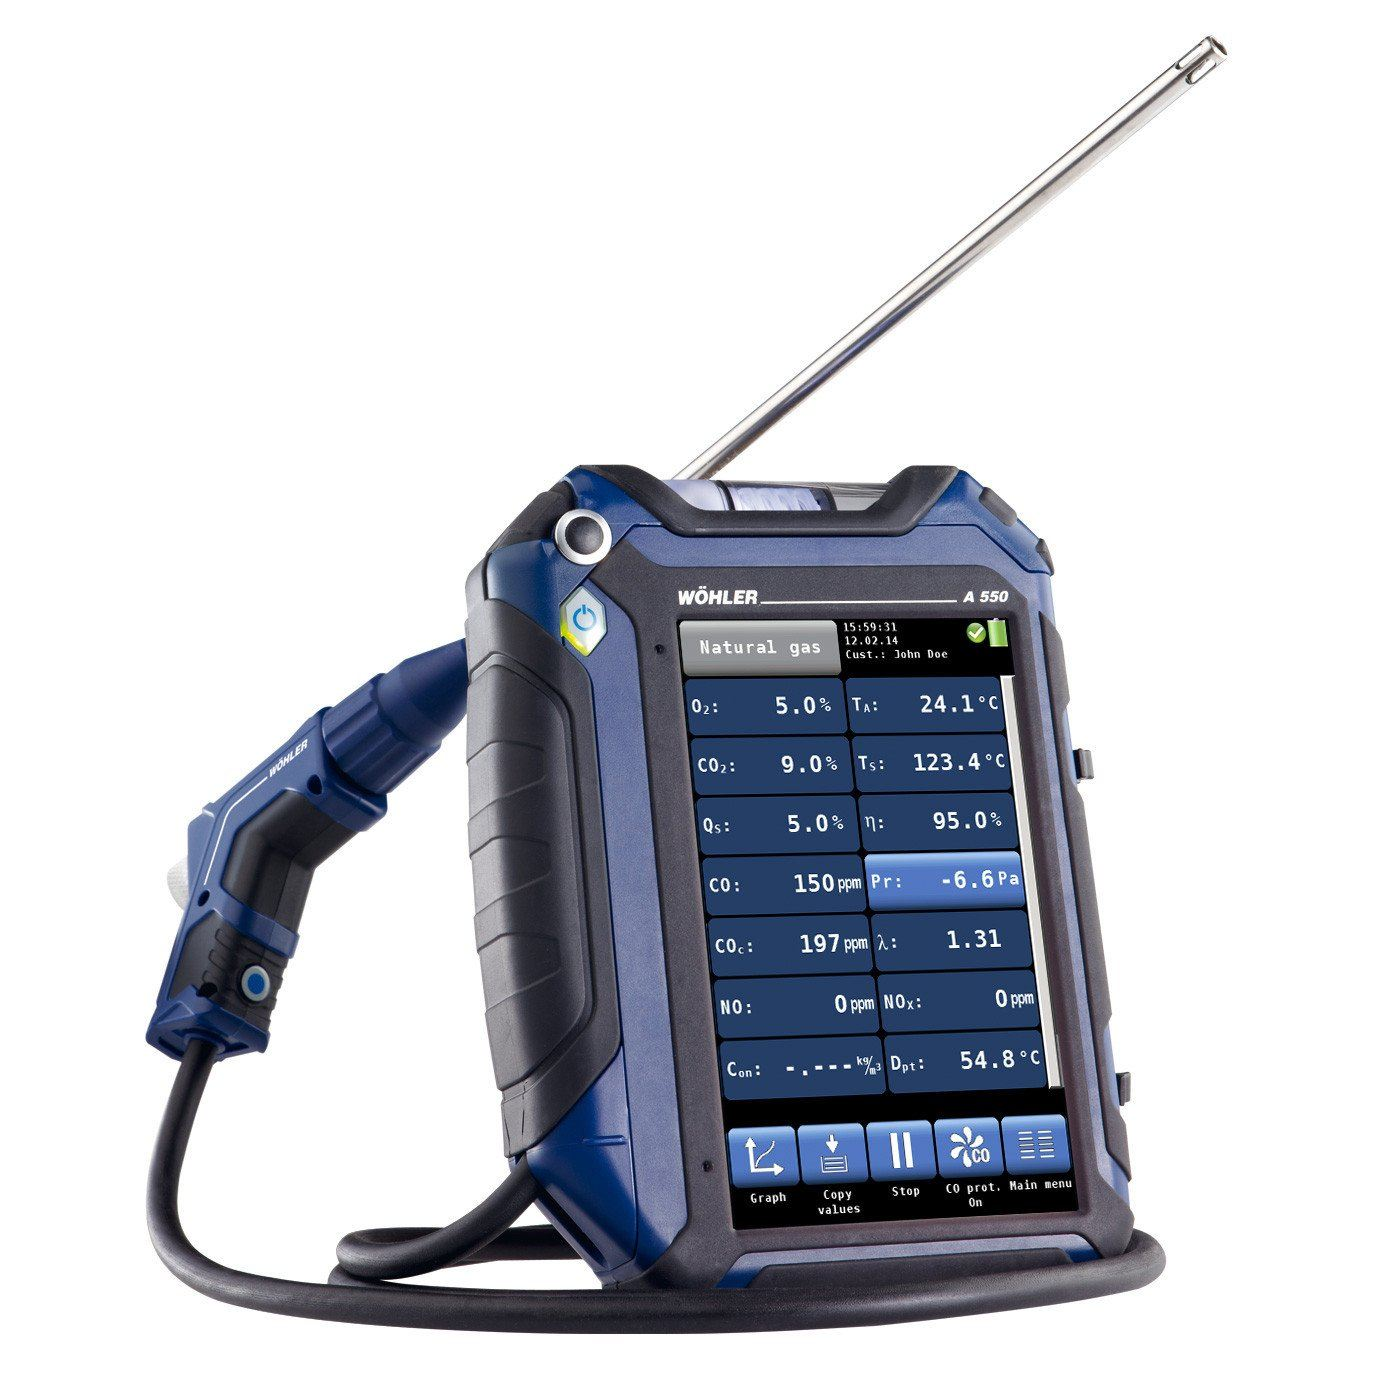 WOHLER A 550 FLUE GAS ANALYZER STANDARD SET